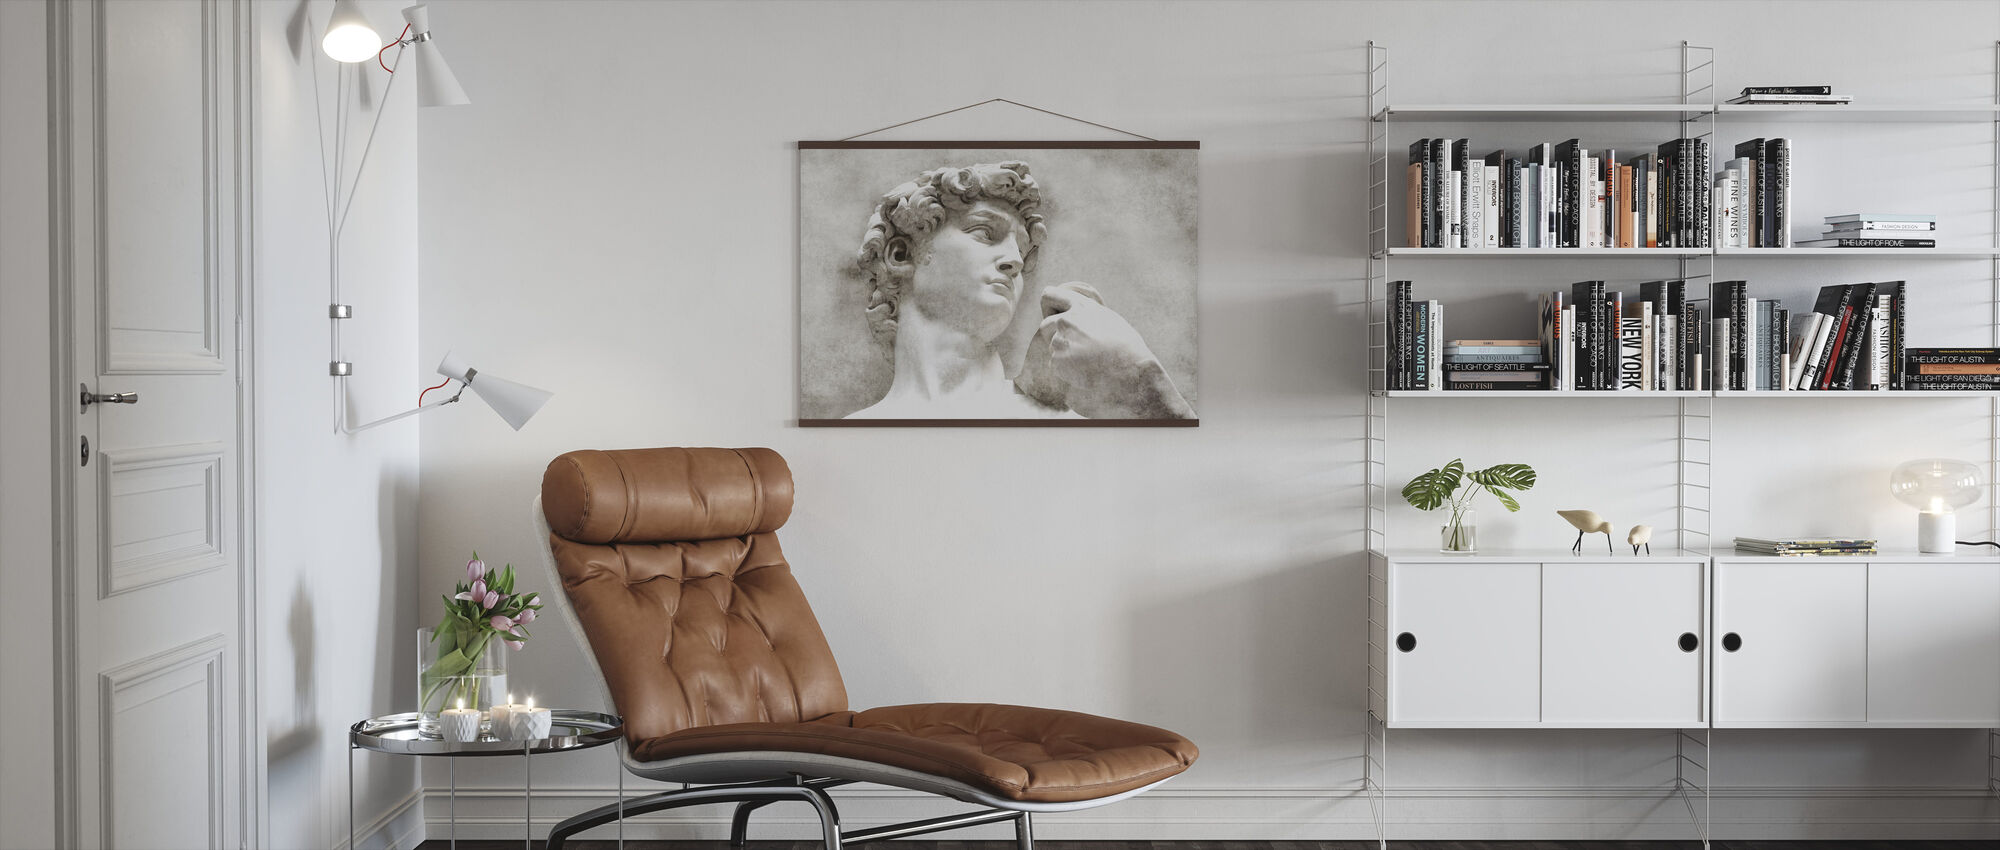 David Statue by Michelangelo - Poster - Living Room